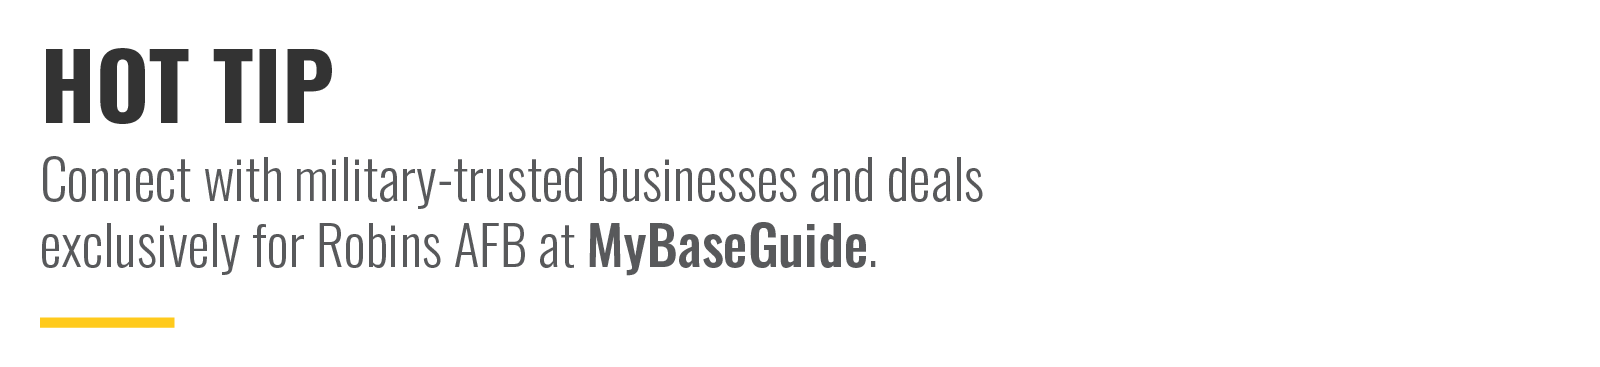 Hot Tip: Connect with military-trusted businesses and deals exclusively at MyBaseGuide.